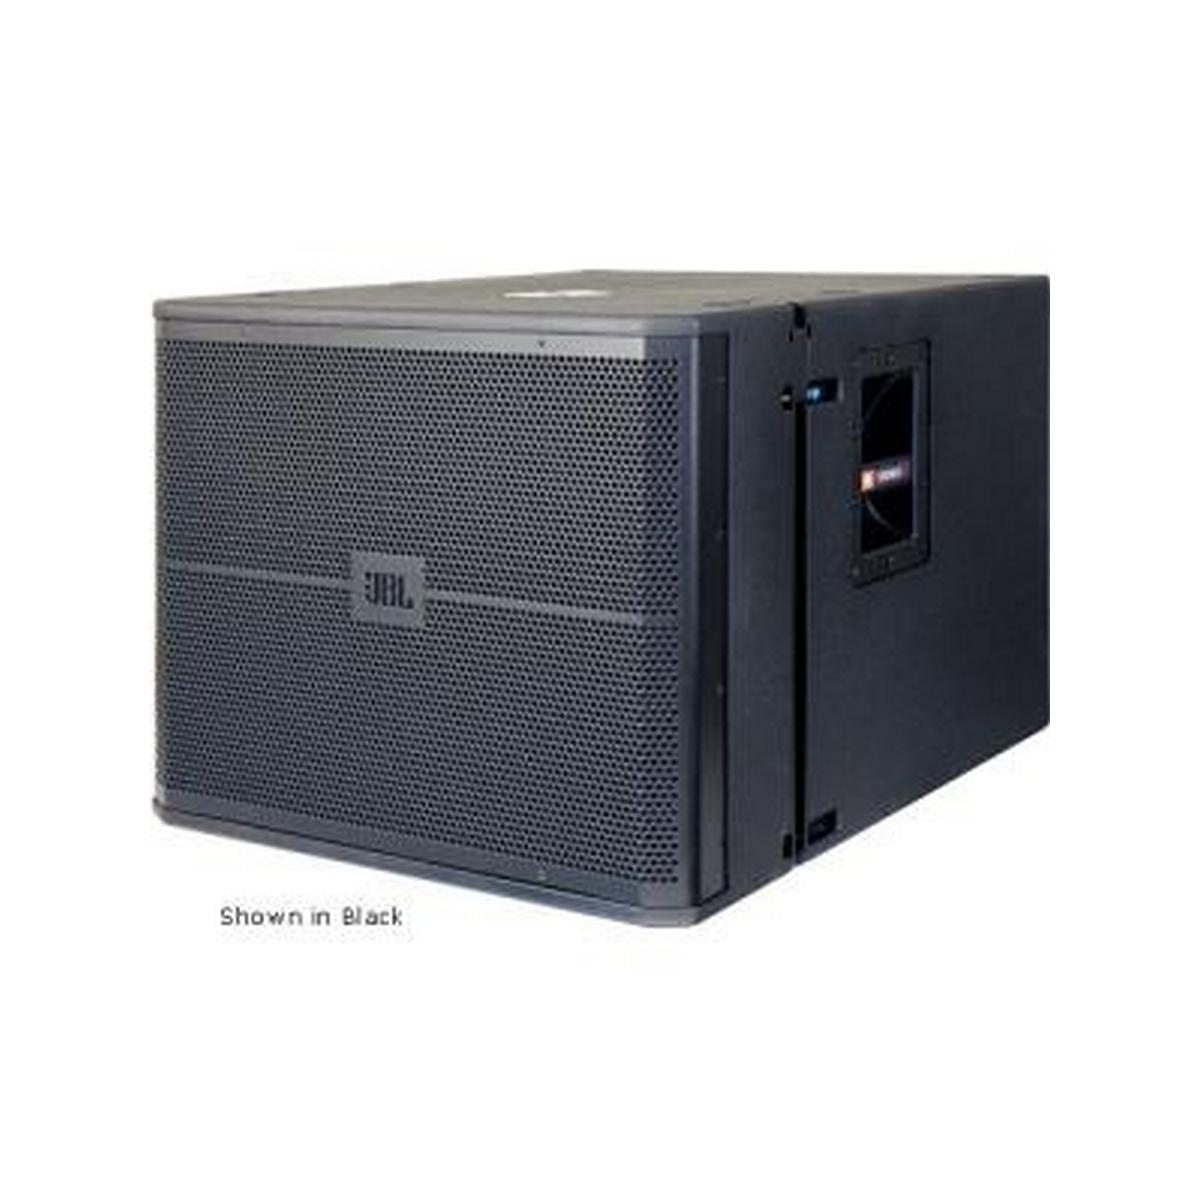 JBL VRX918SWH S/M, VRX918S-WH